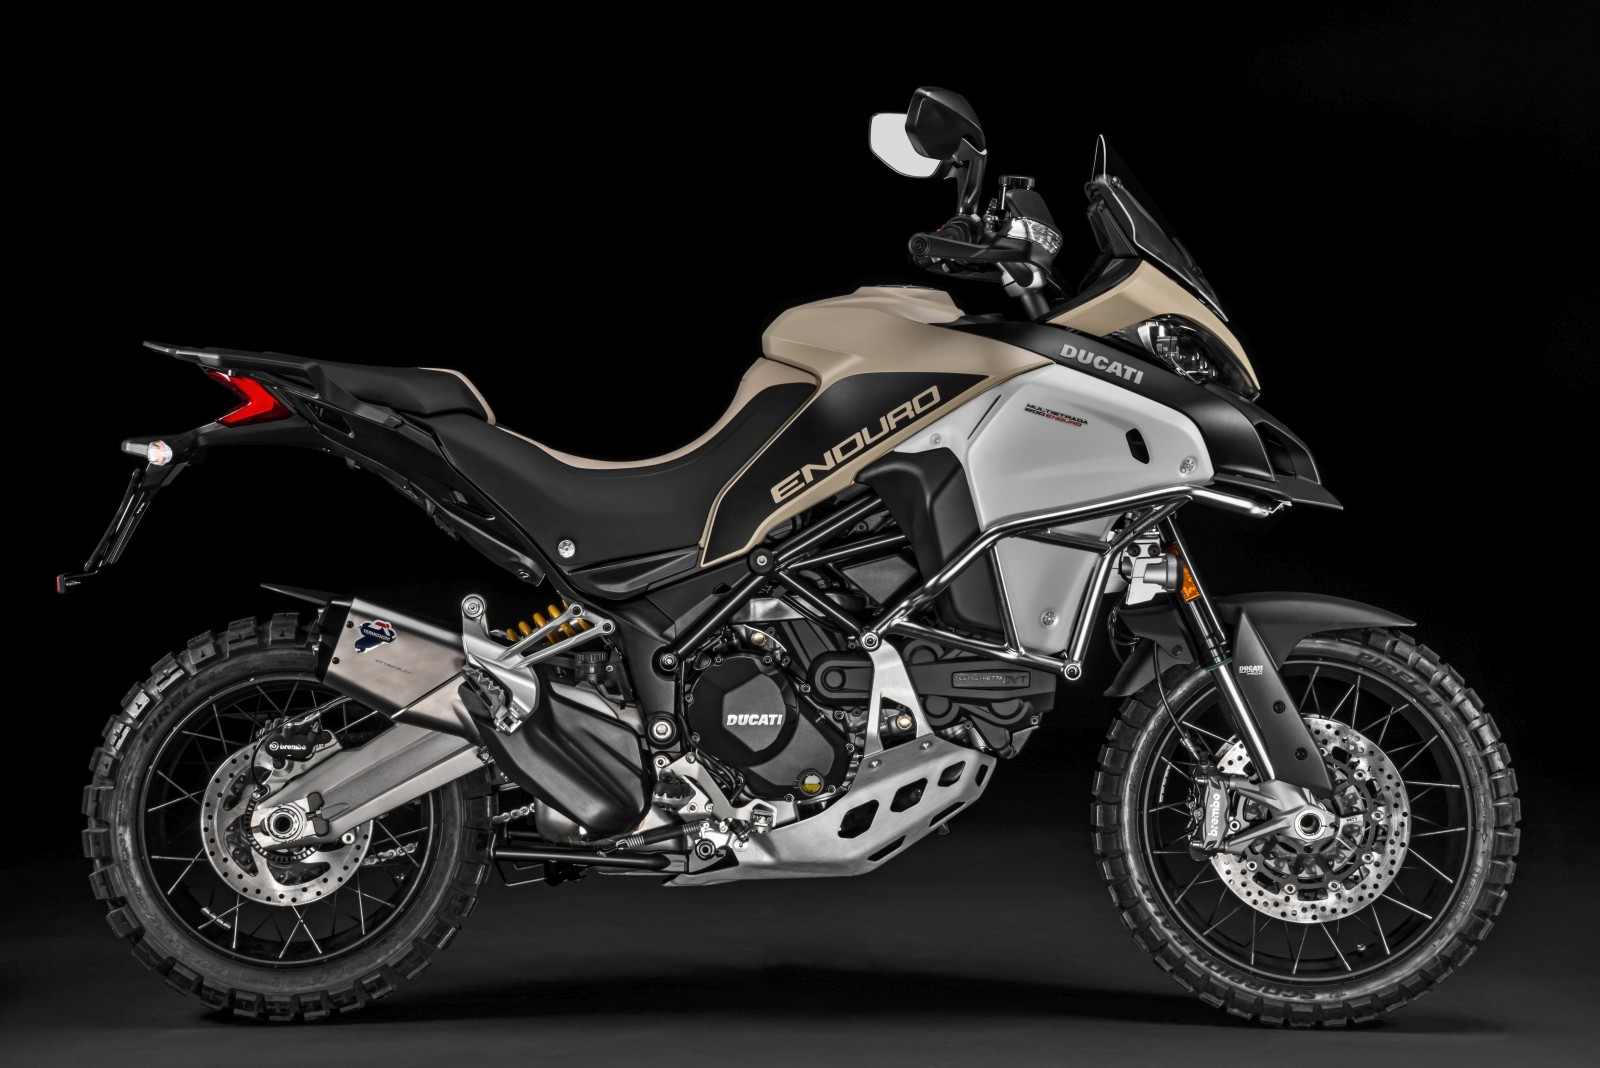 Ducati Multistrada 1200 Enduro Gets New Pro Version